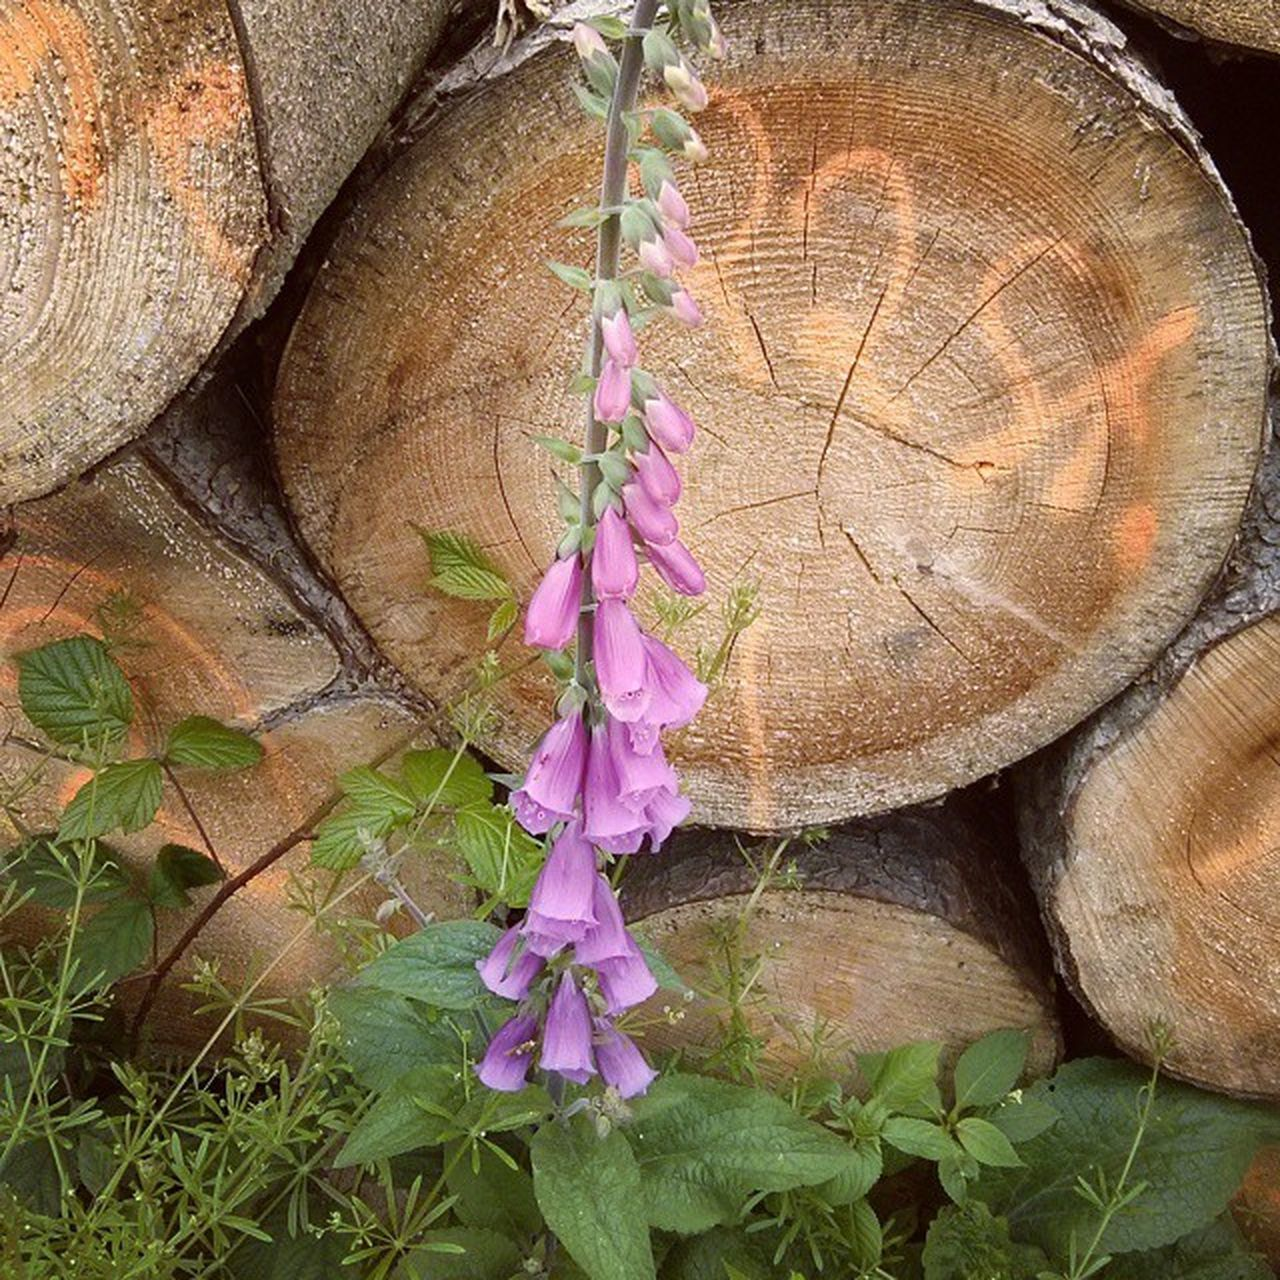 Flower Foxglove Flowers Blossoms  Tree_trunks Nature Outdoors Idyllic Non-urban Scene